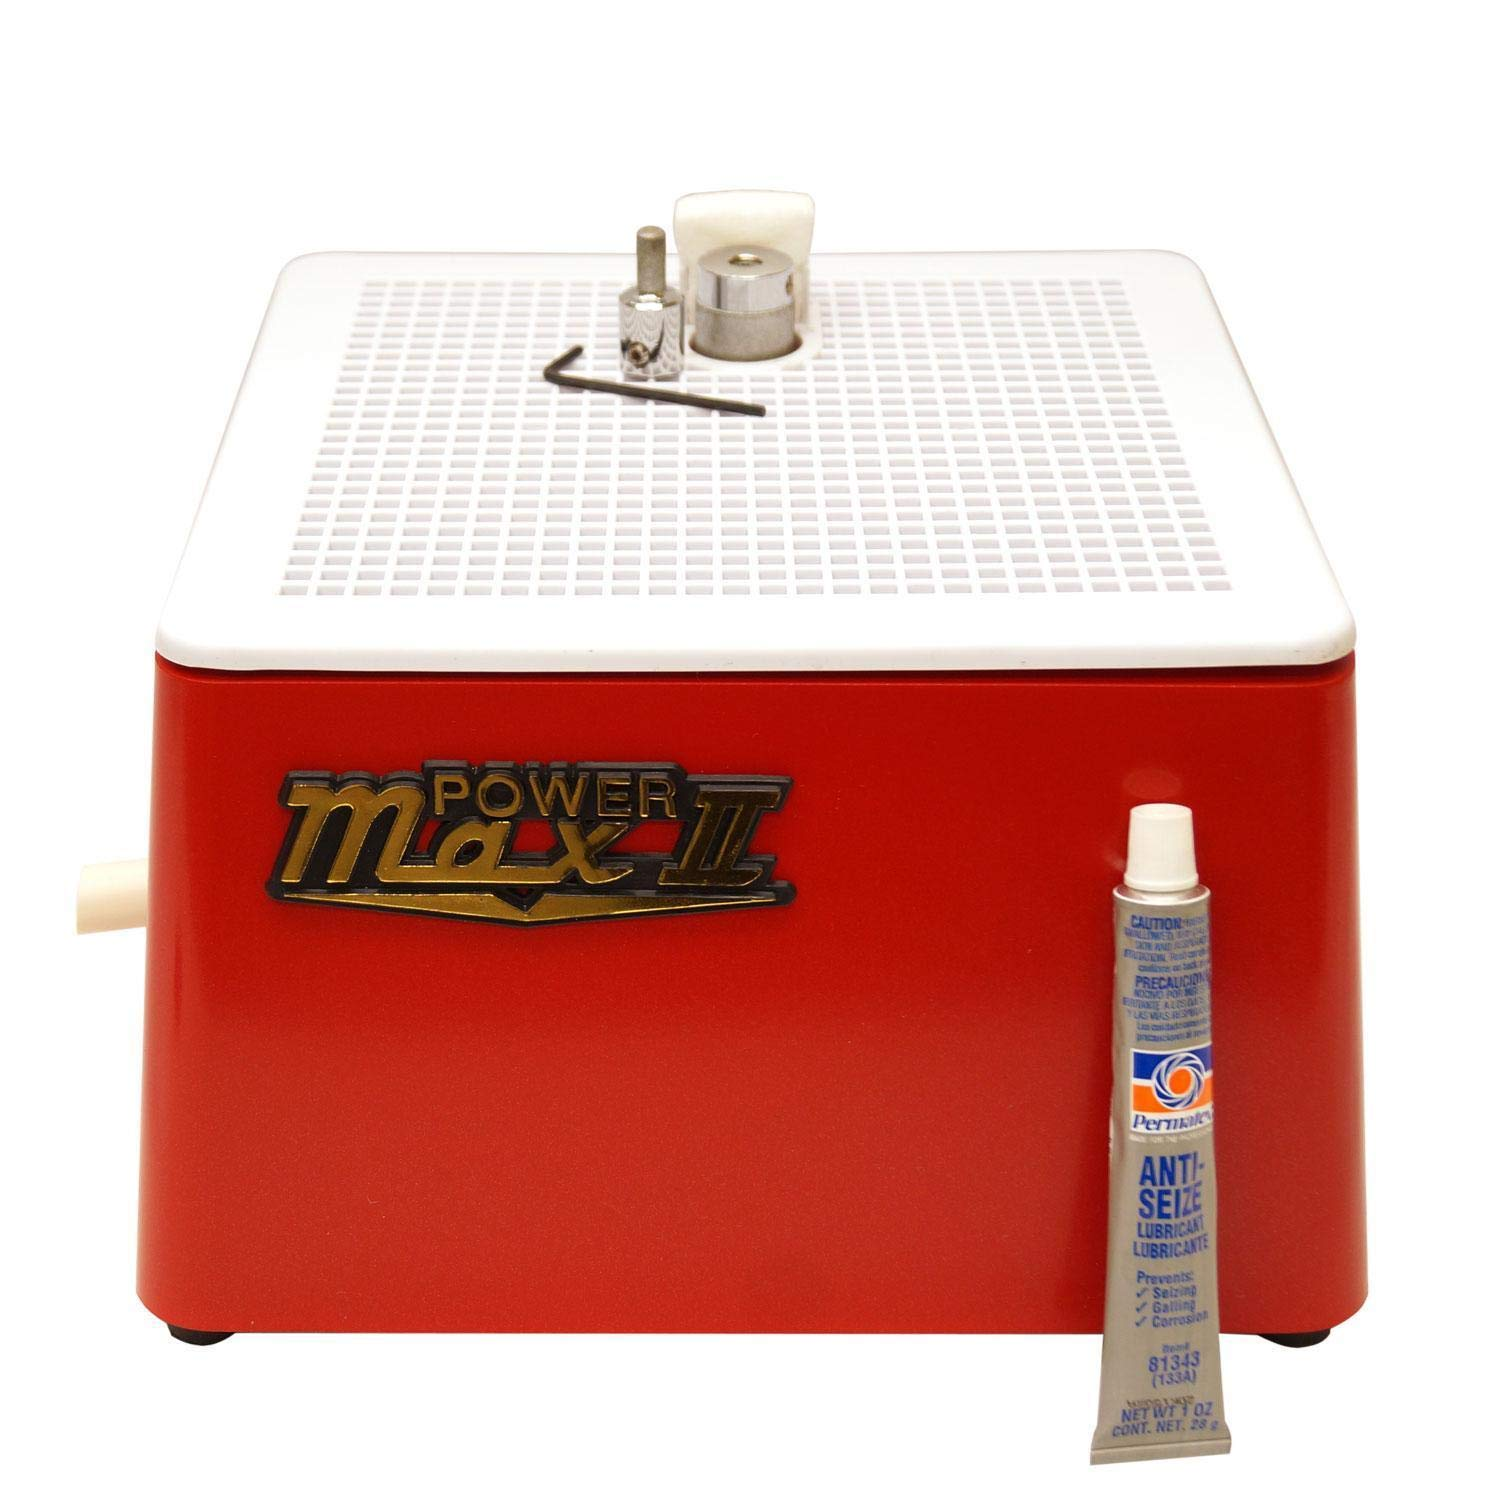 DTI Power Max II Grinder for Stained Glass